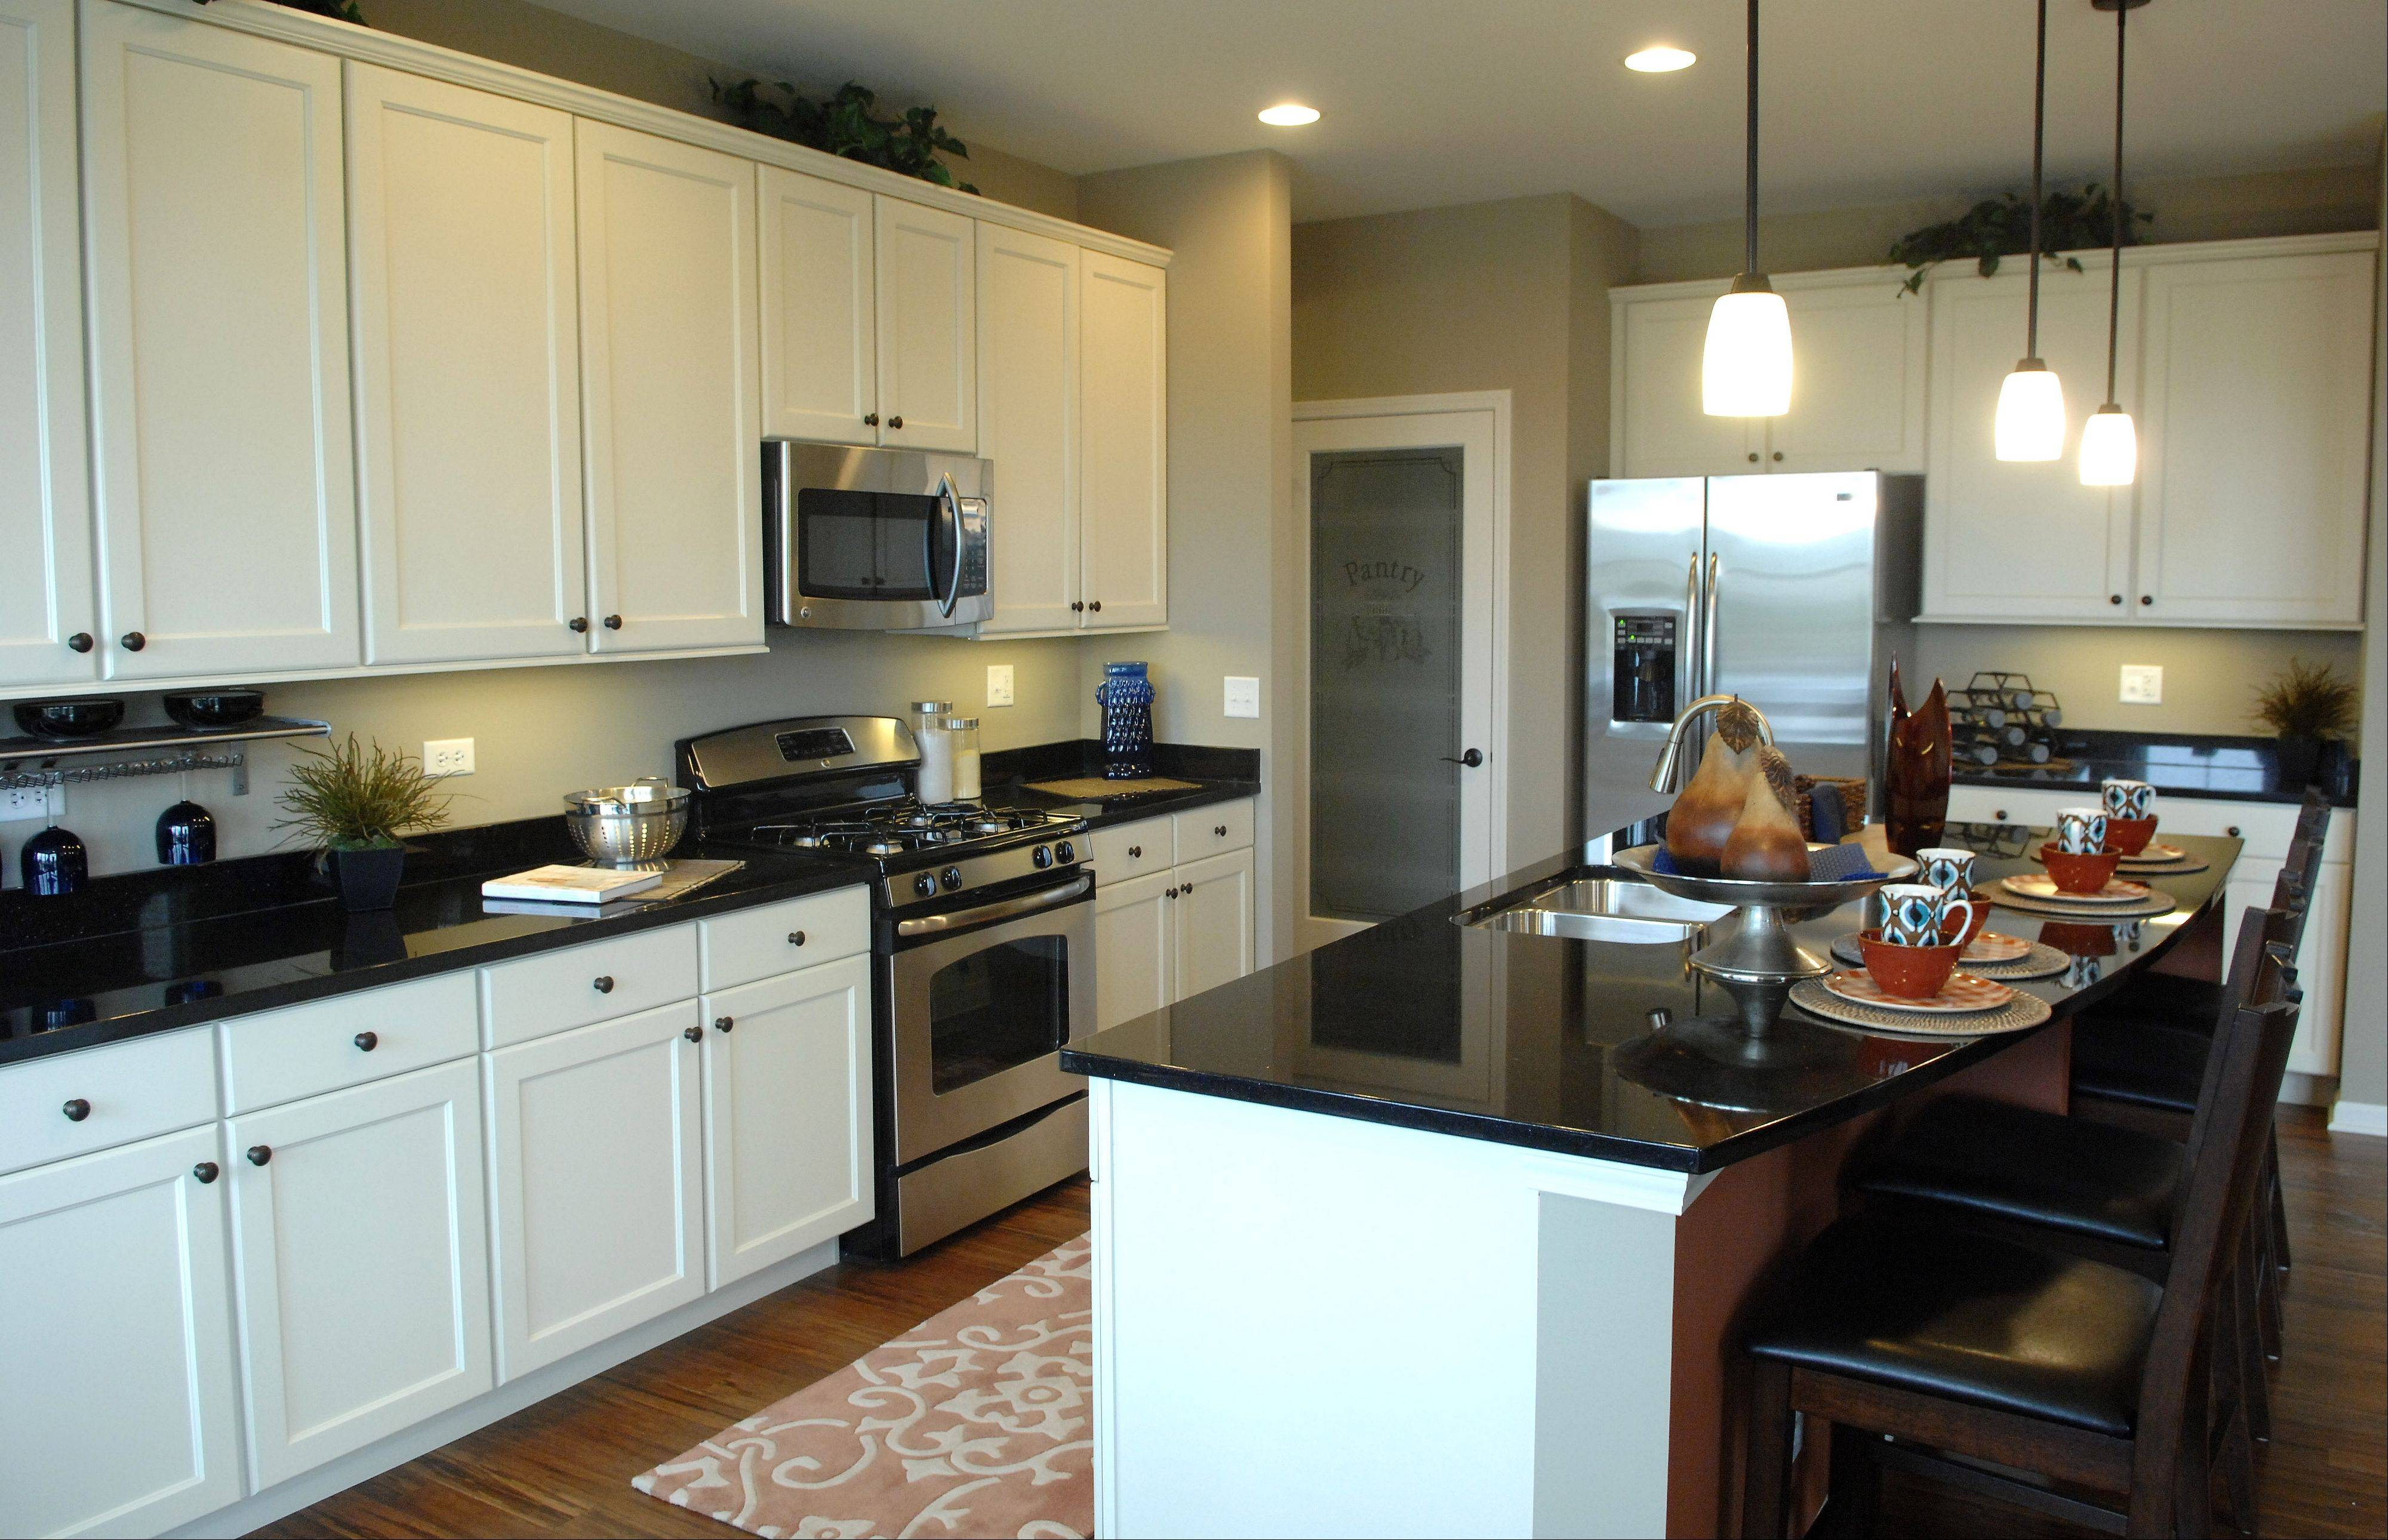 The kitchen island and adjoining breakfast area can accommodate seating for 12.